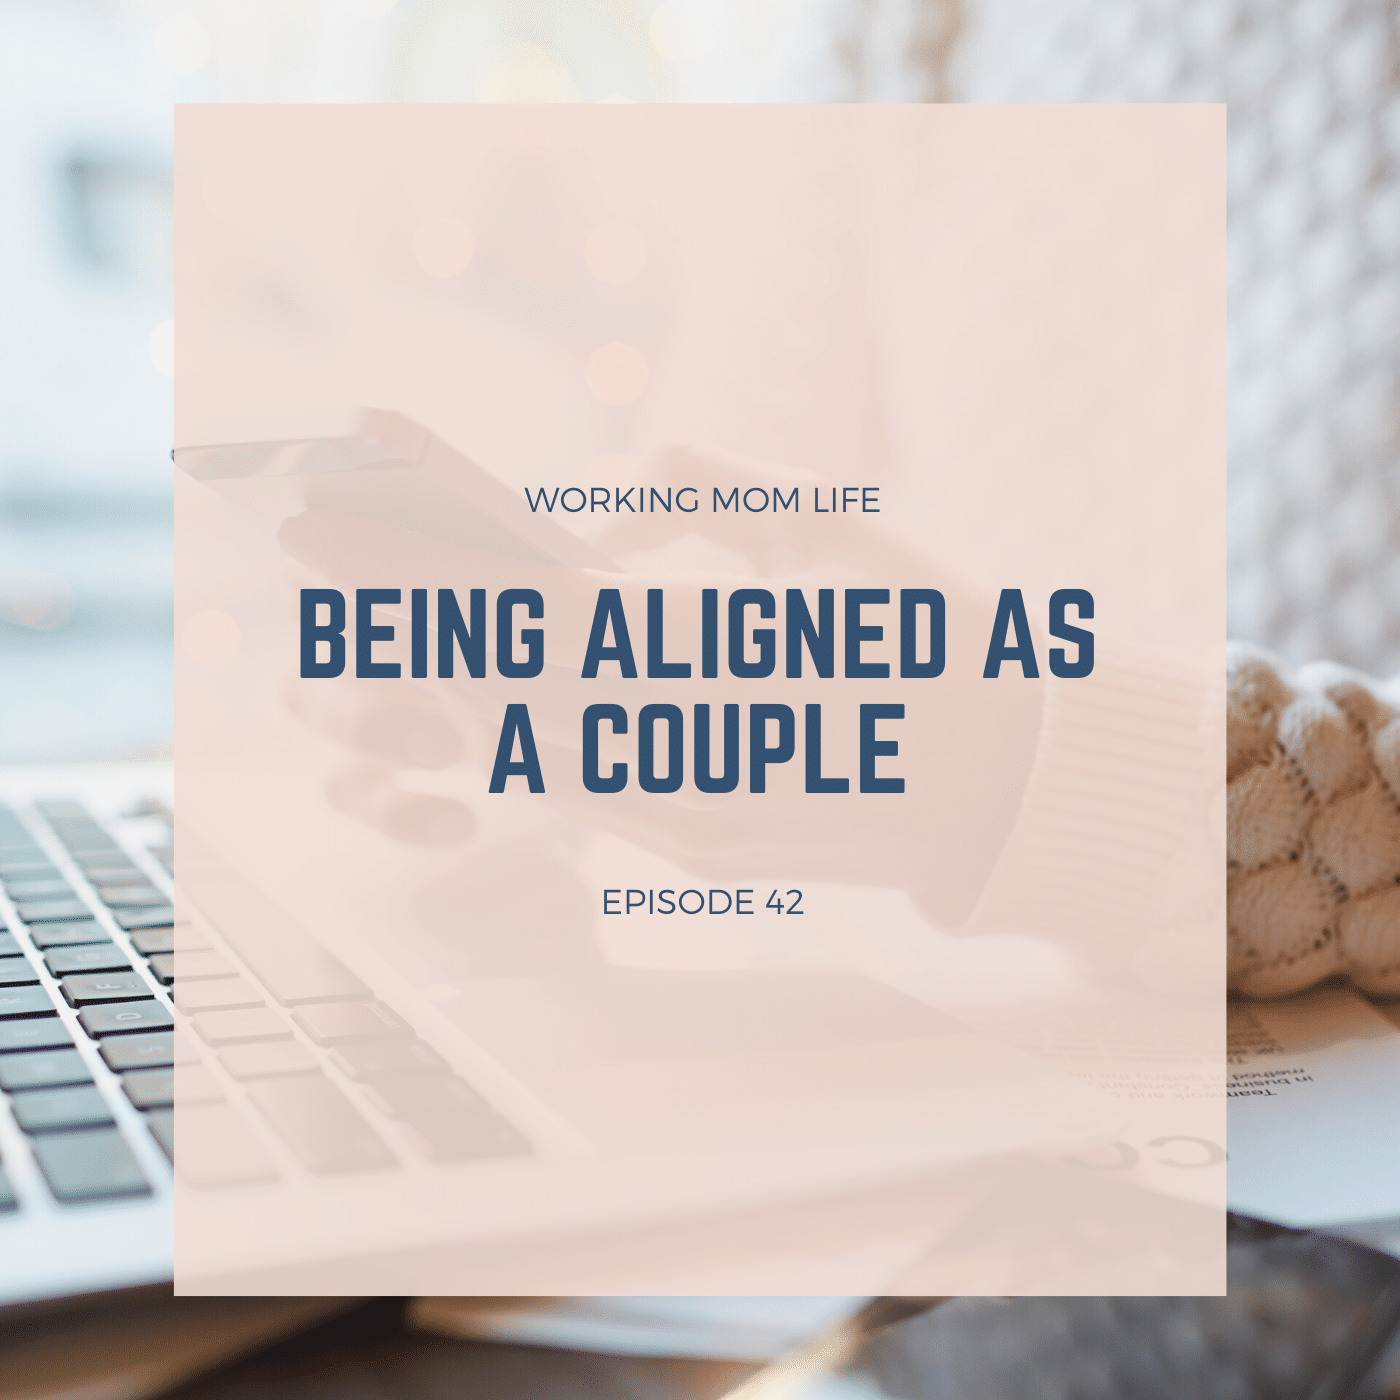 Episode 42 – Being Aligned as a Couple